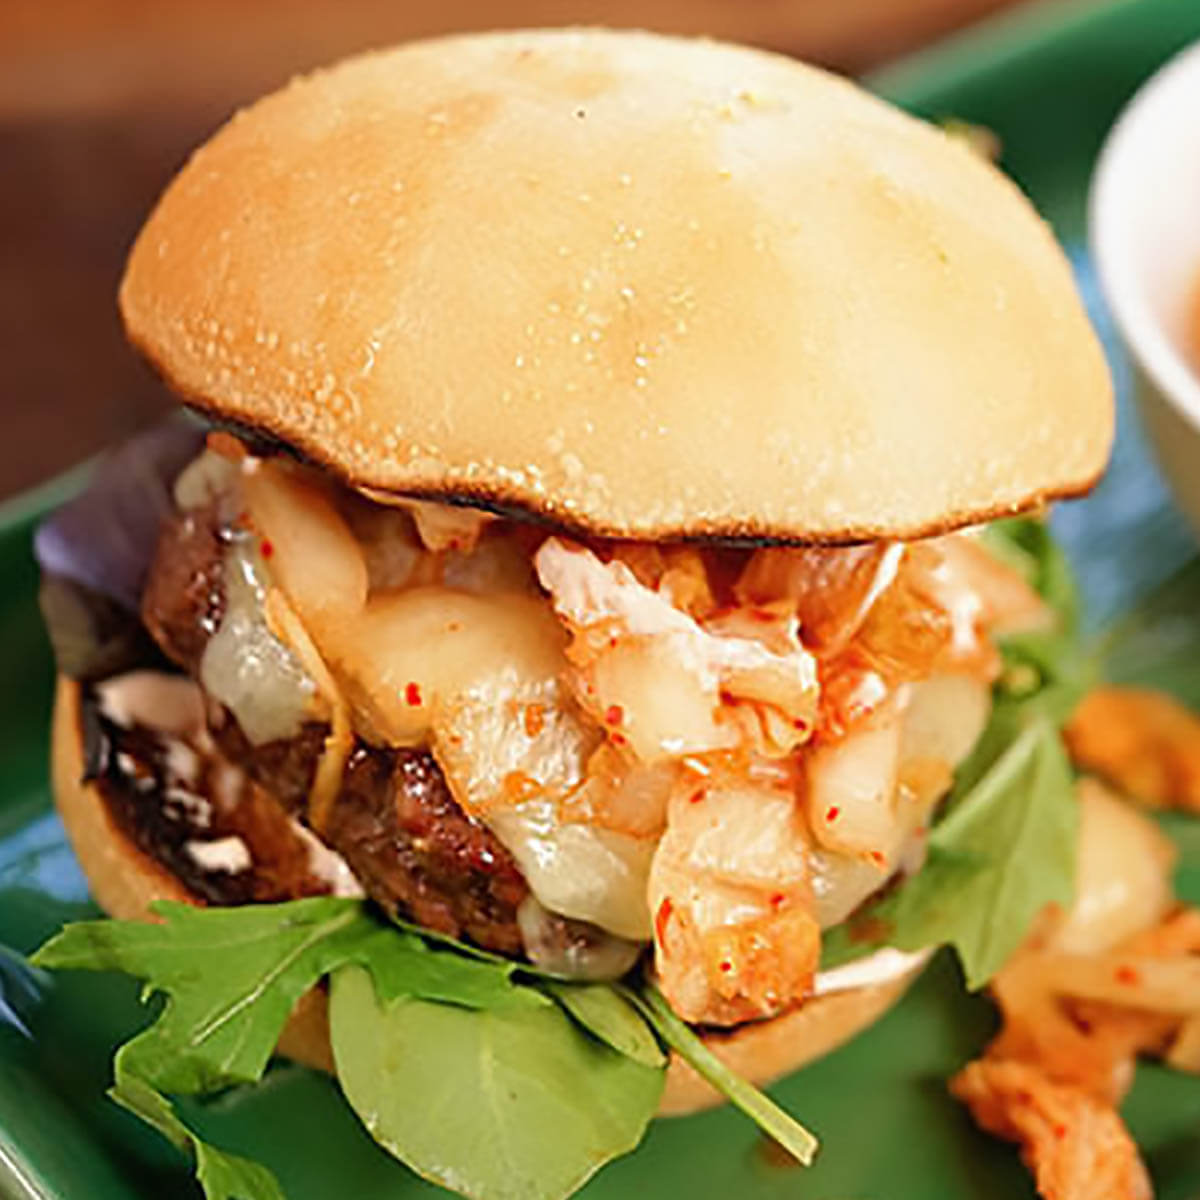 Kimchi Burger grilled and topped with slaw and cheese.